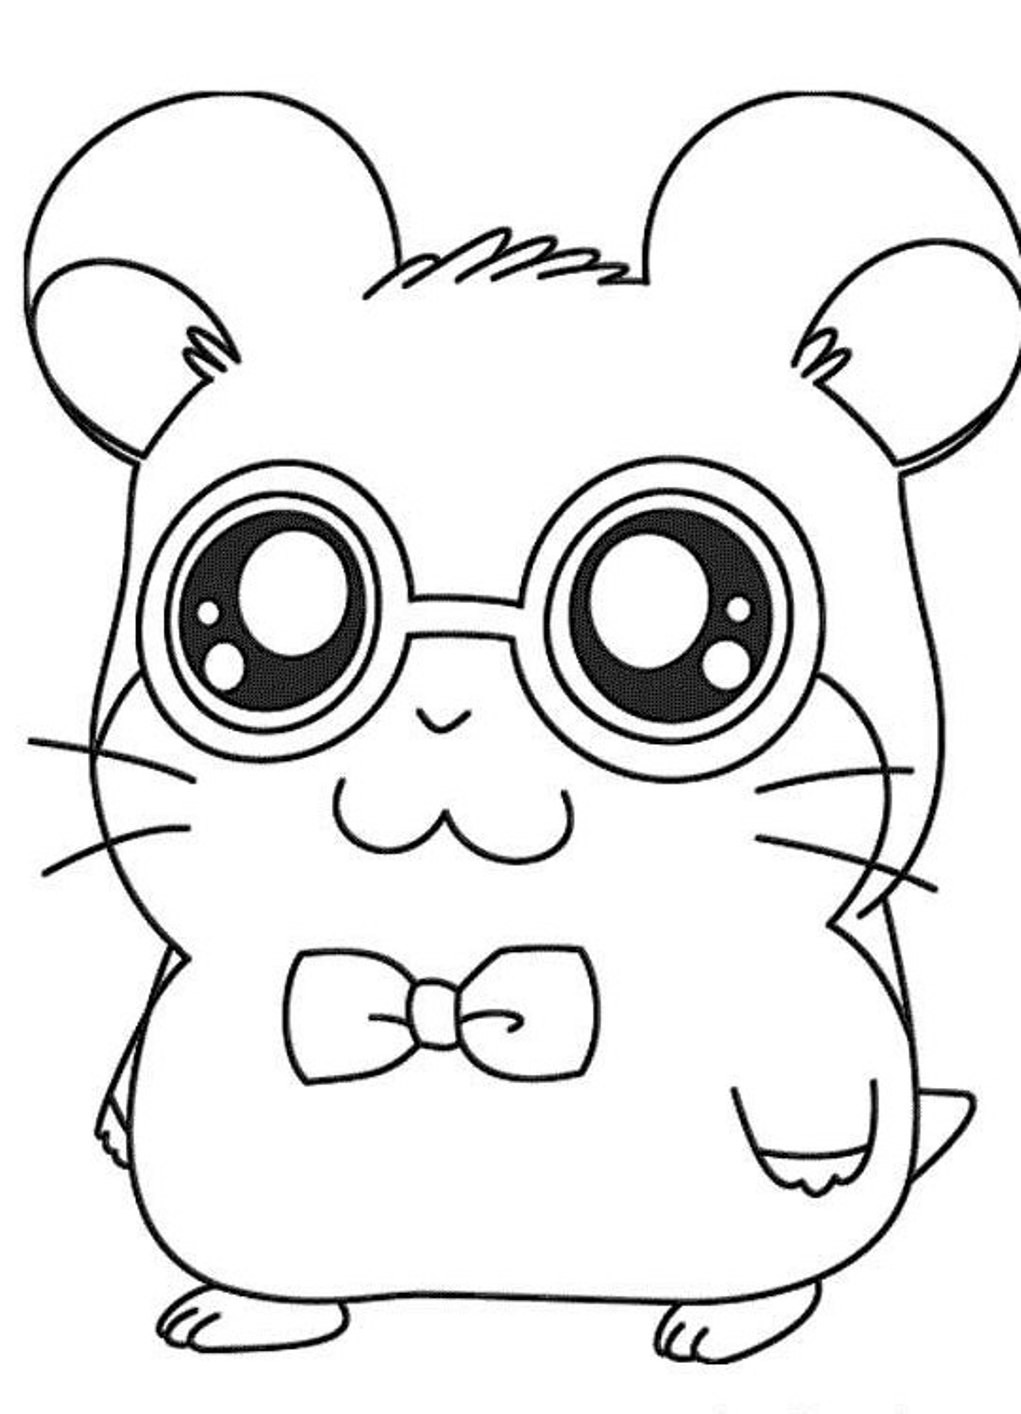 Best ideas about Free Printable Coloring Sheets Of Baby Animals With Big Eyes And Are Kittens . Save or Pin Cute Baby Animal Coloring Pages 8433 Bestofcoloring Now.